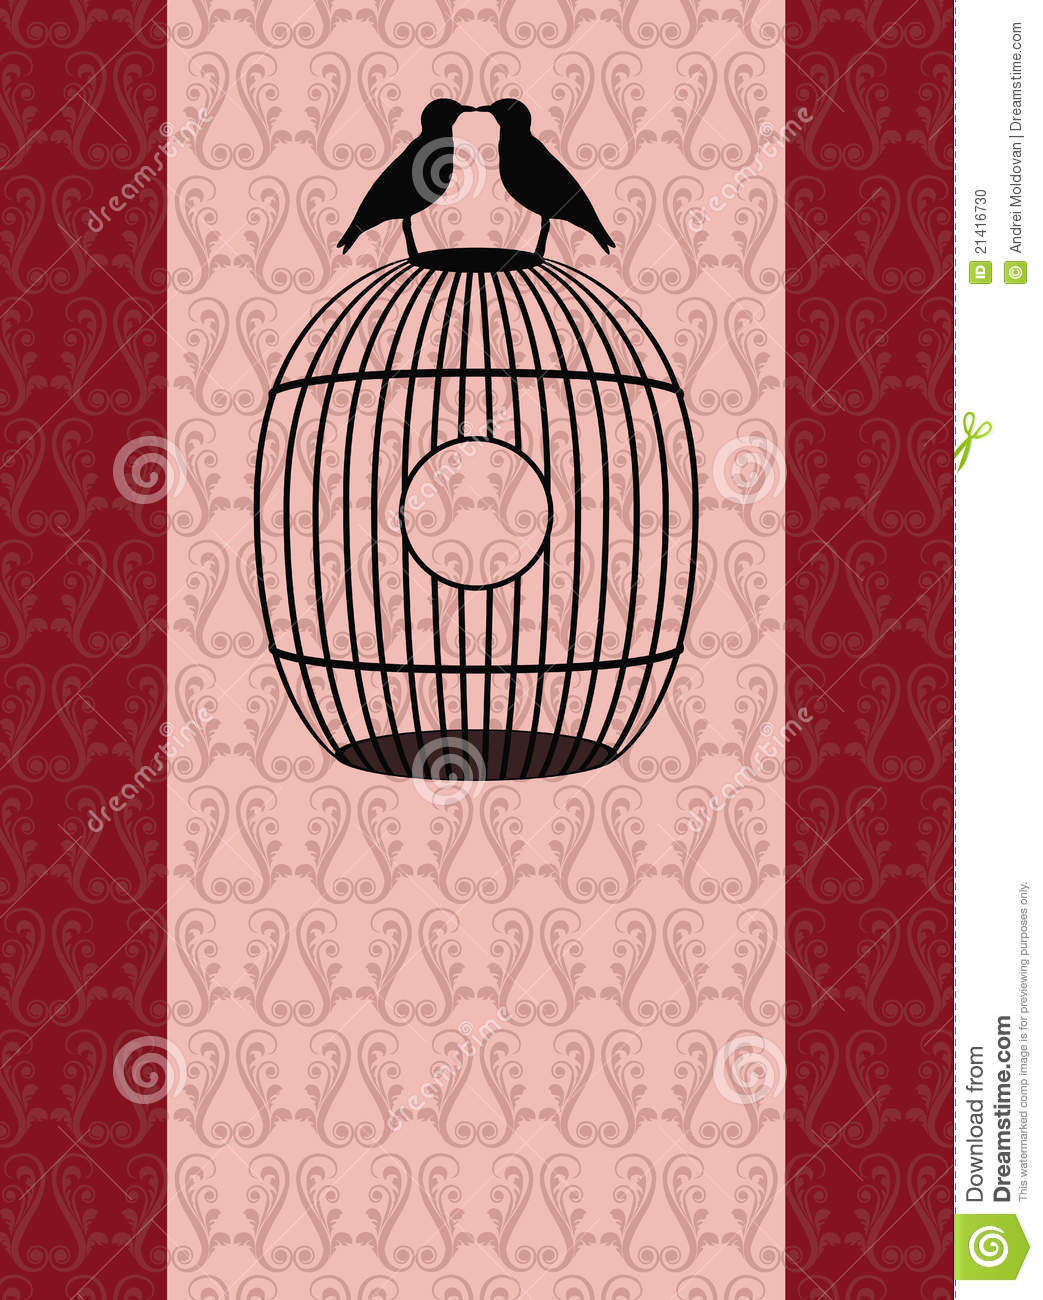 belle carte romantique avec des oiseaux sur une cage d. Black Bedroom Furniture Sets. Home Design Ideas